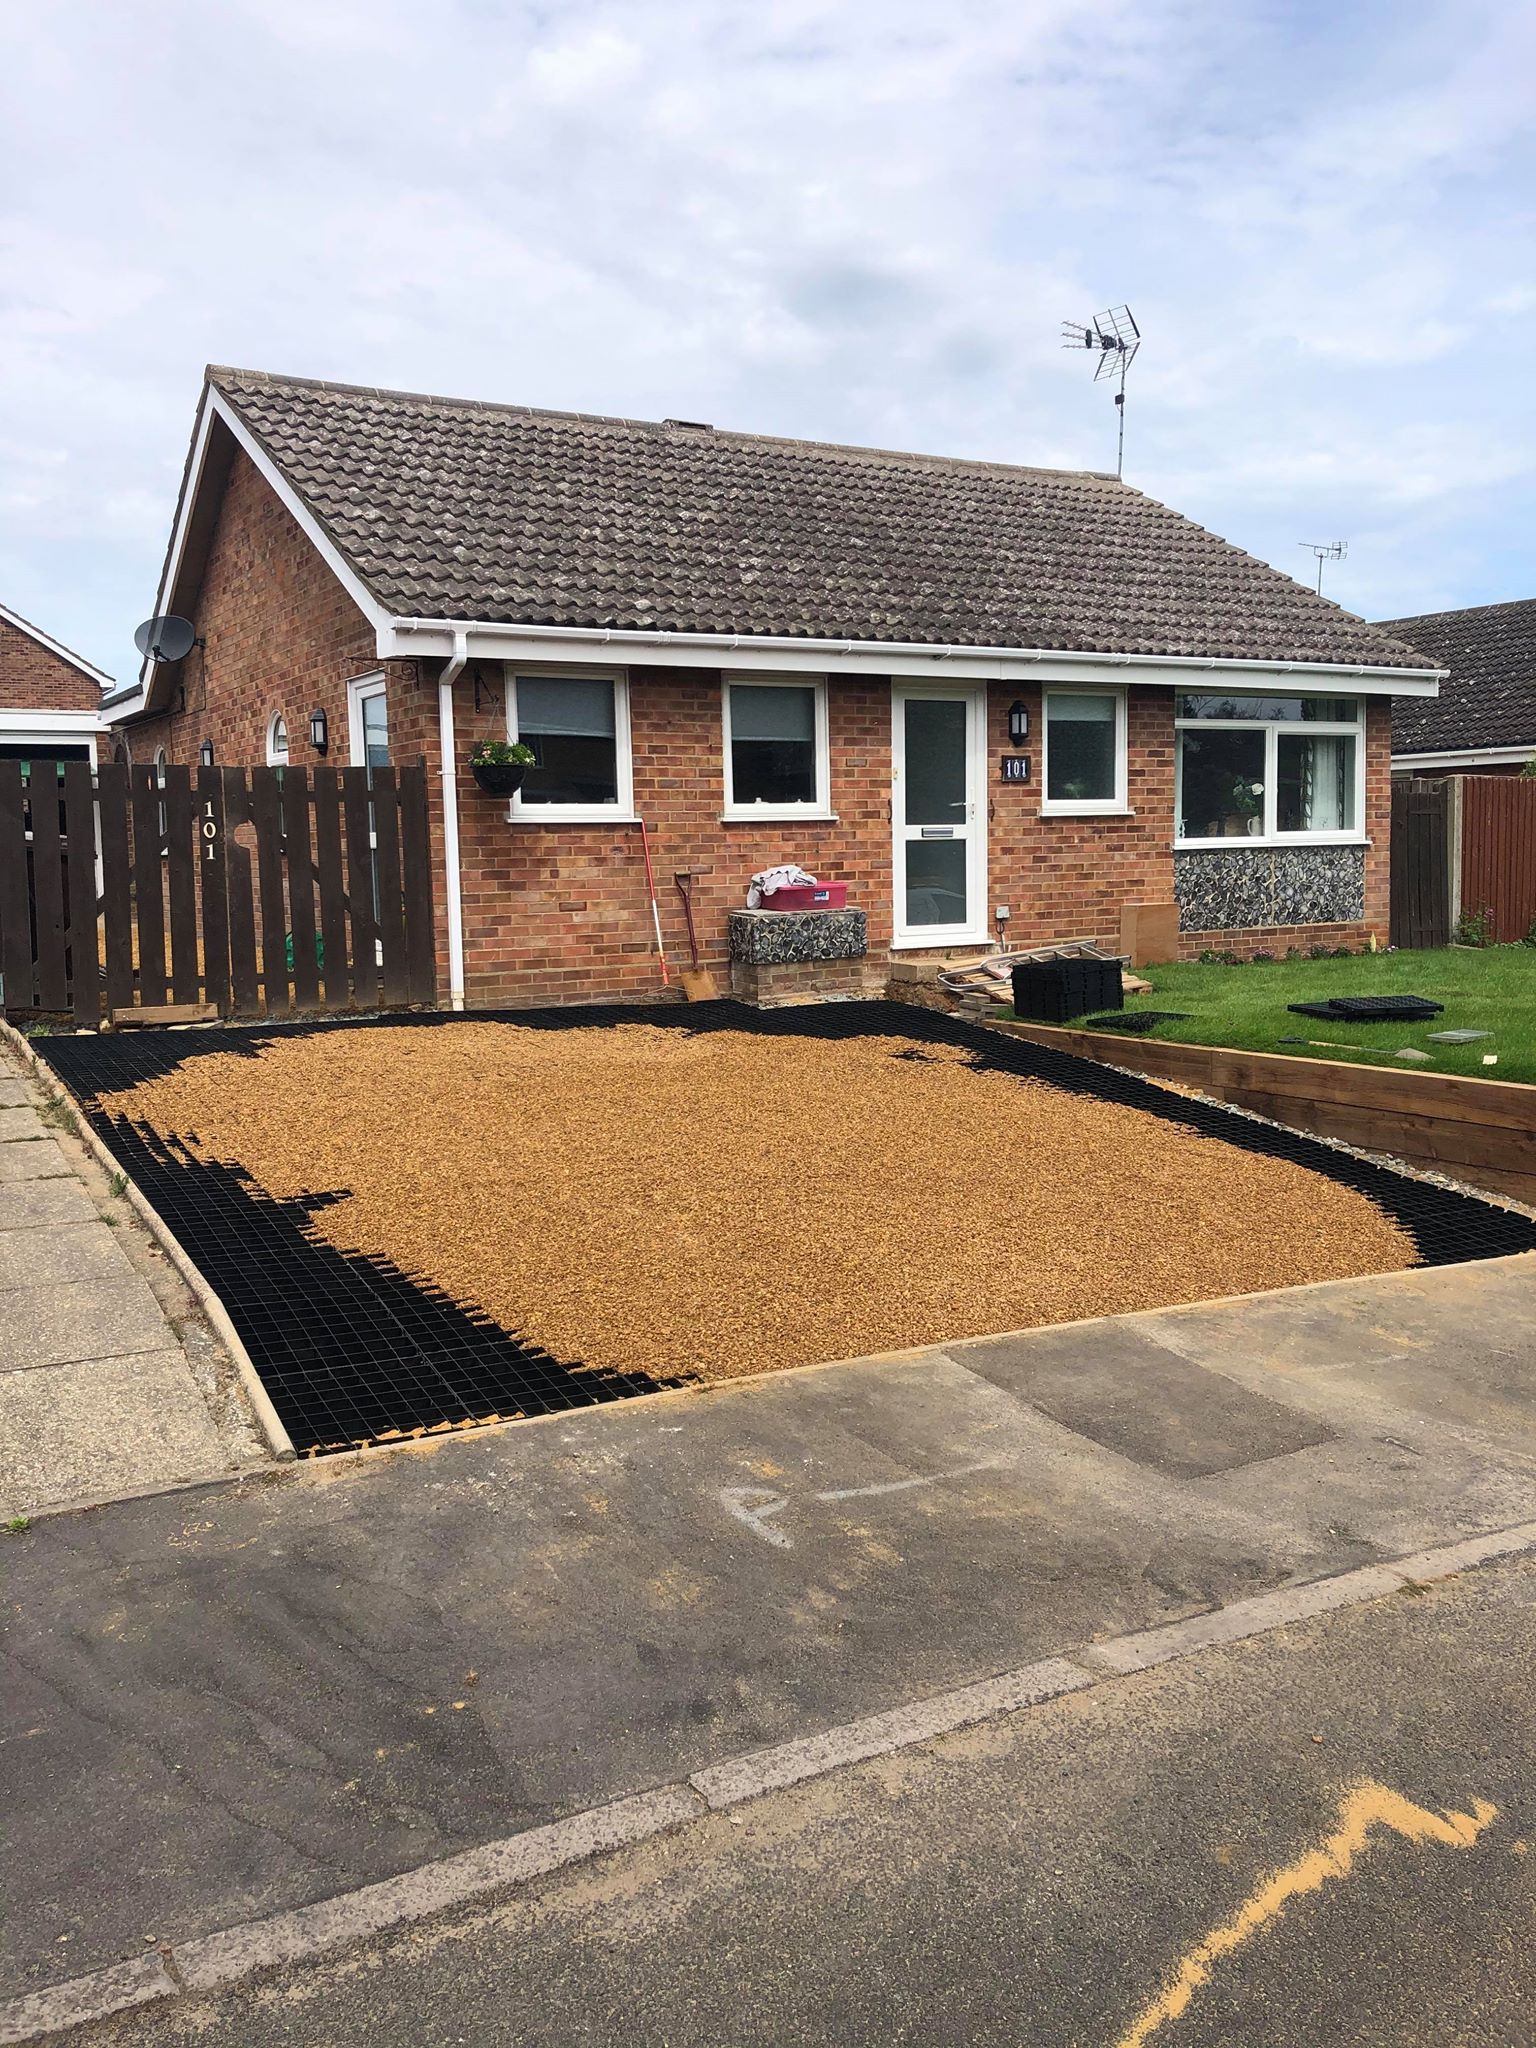 Low cost gravel driveway option using ibran gravel grids